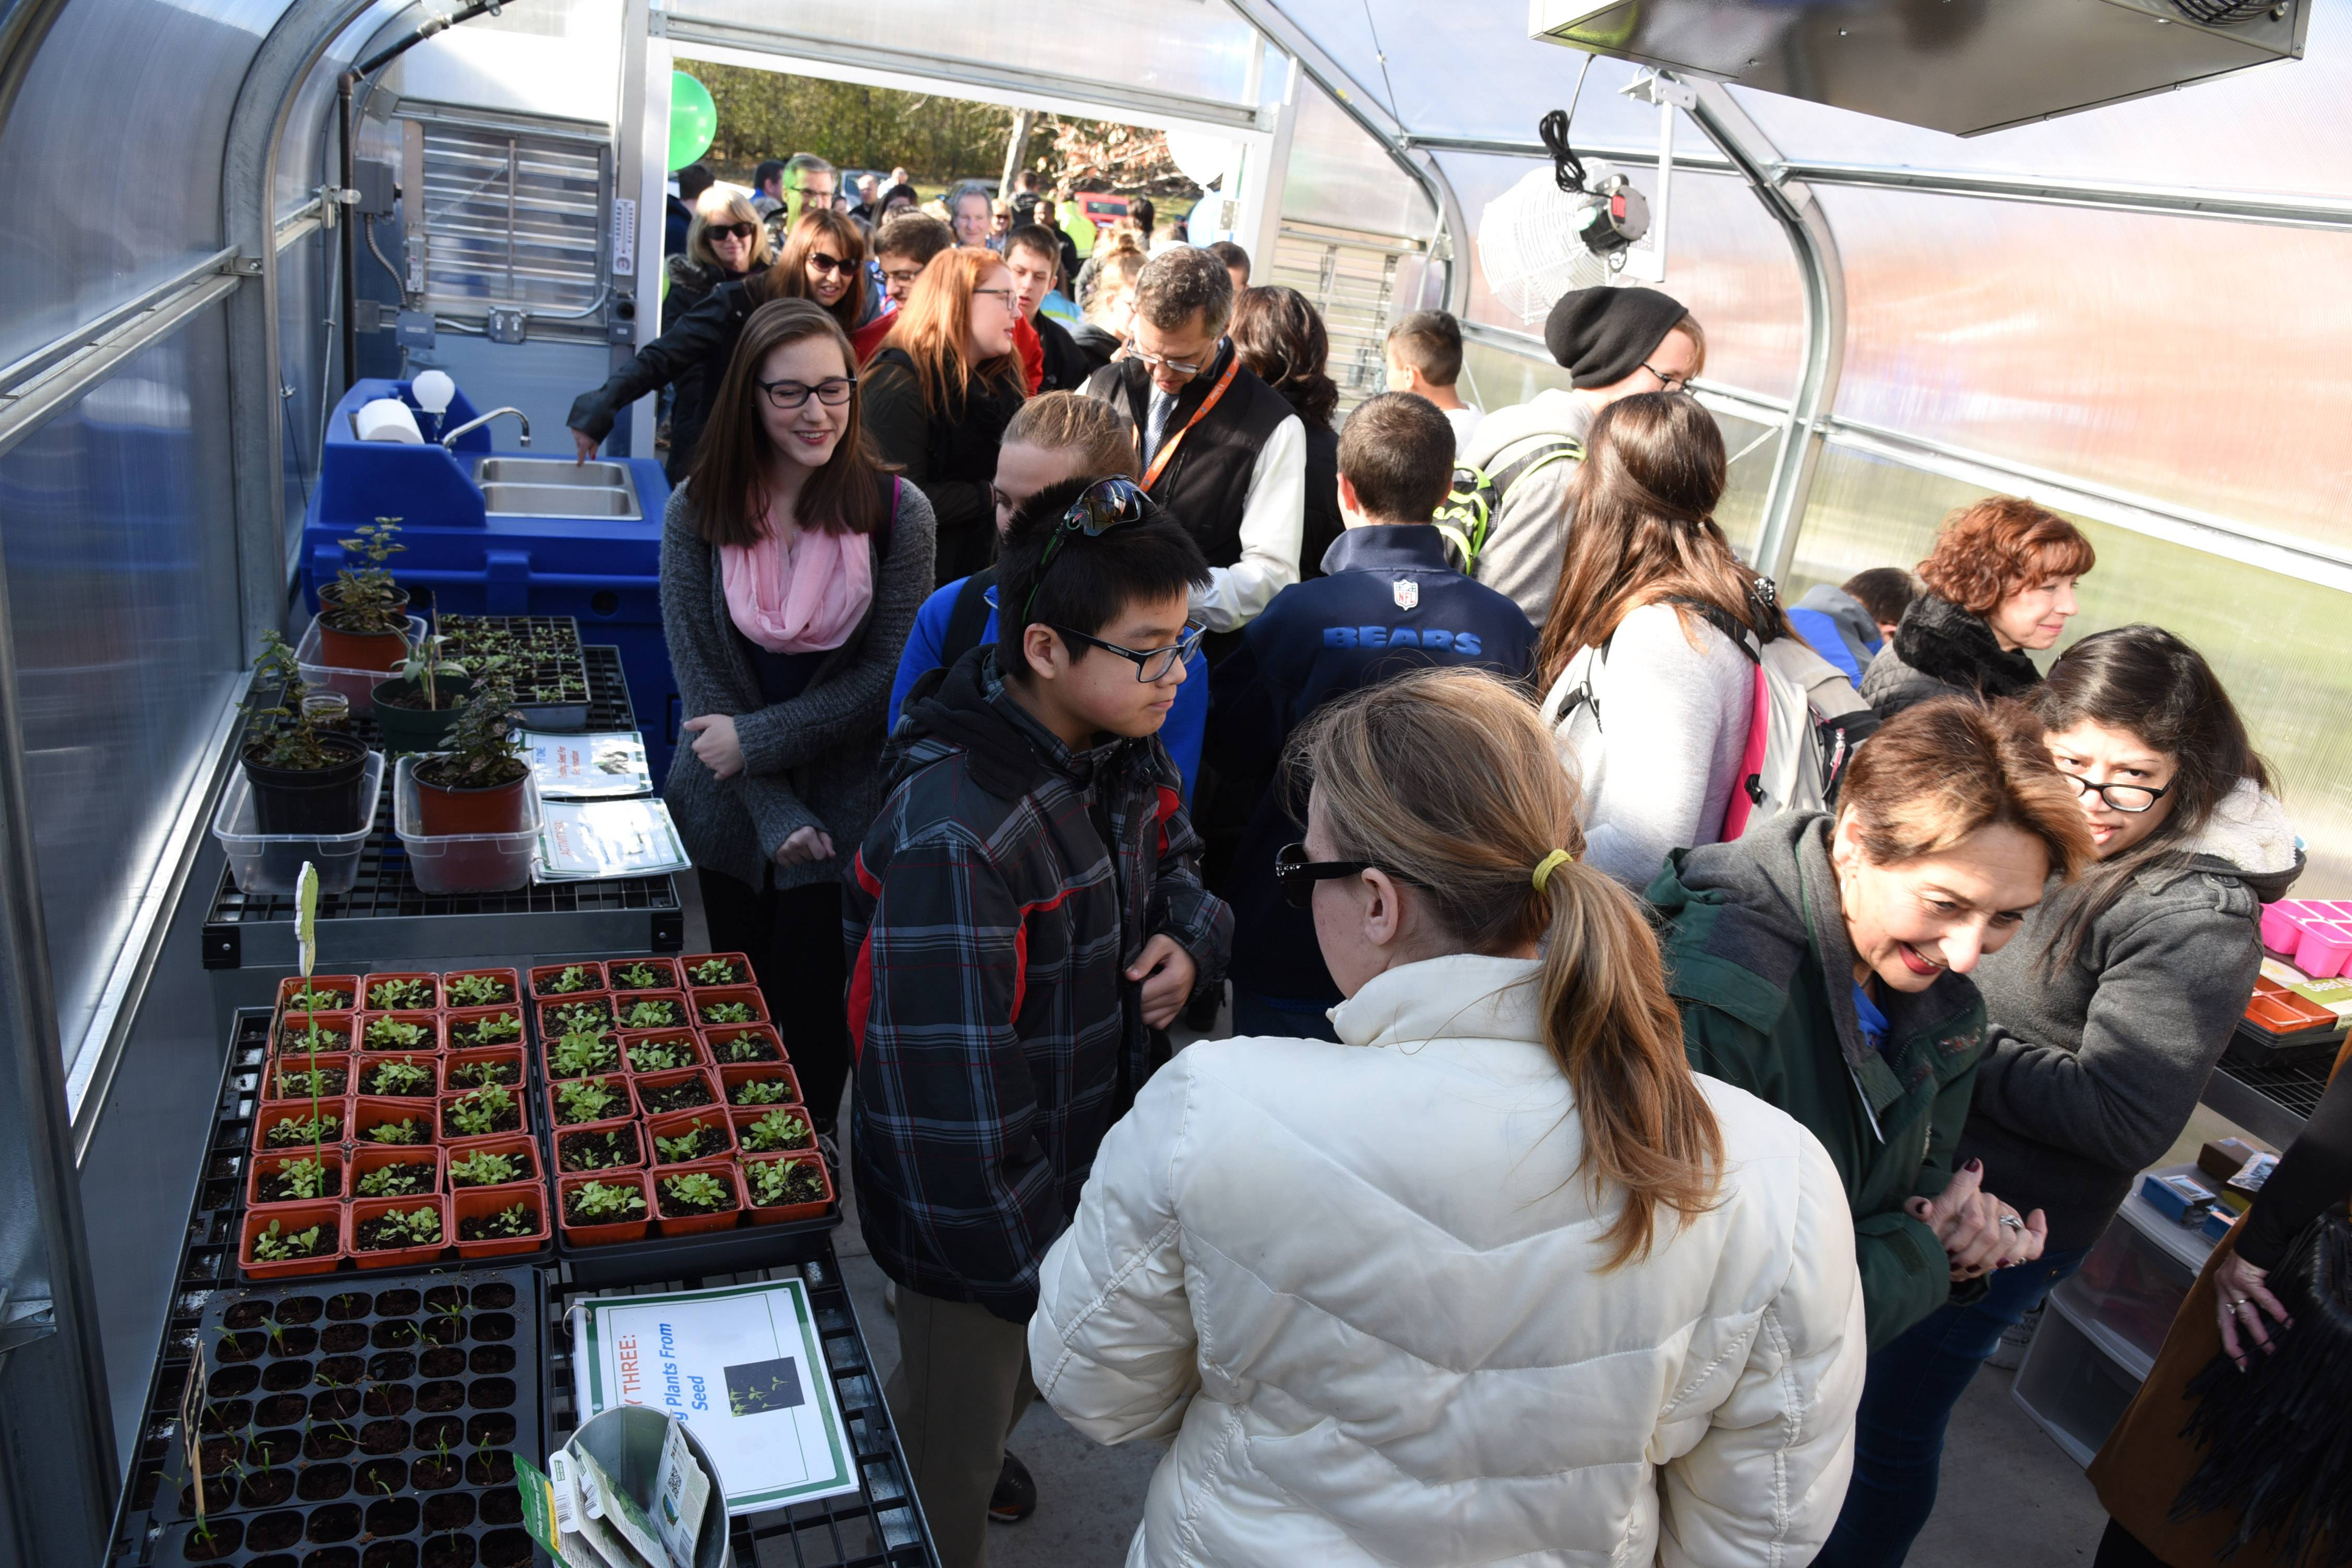 Lake Zurich High School debuts a greenhouse geared to help older students with disabilities gain skills for everyday living and possibly horticulture-related jobs.